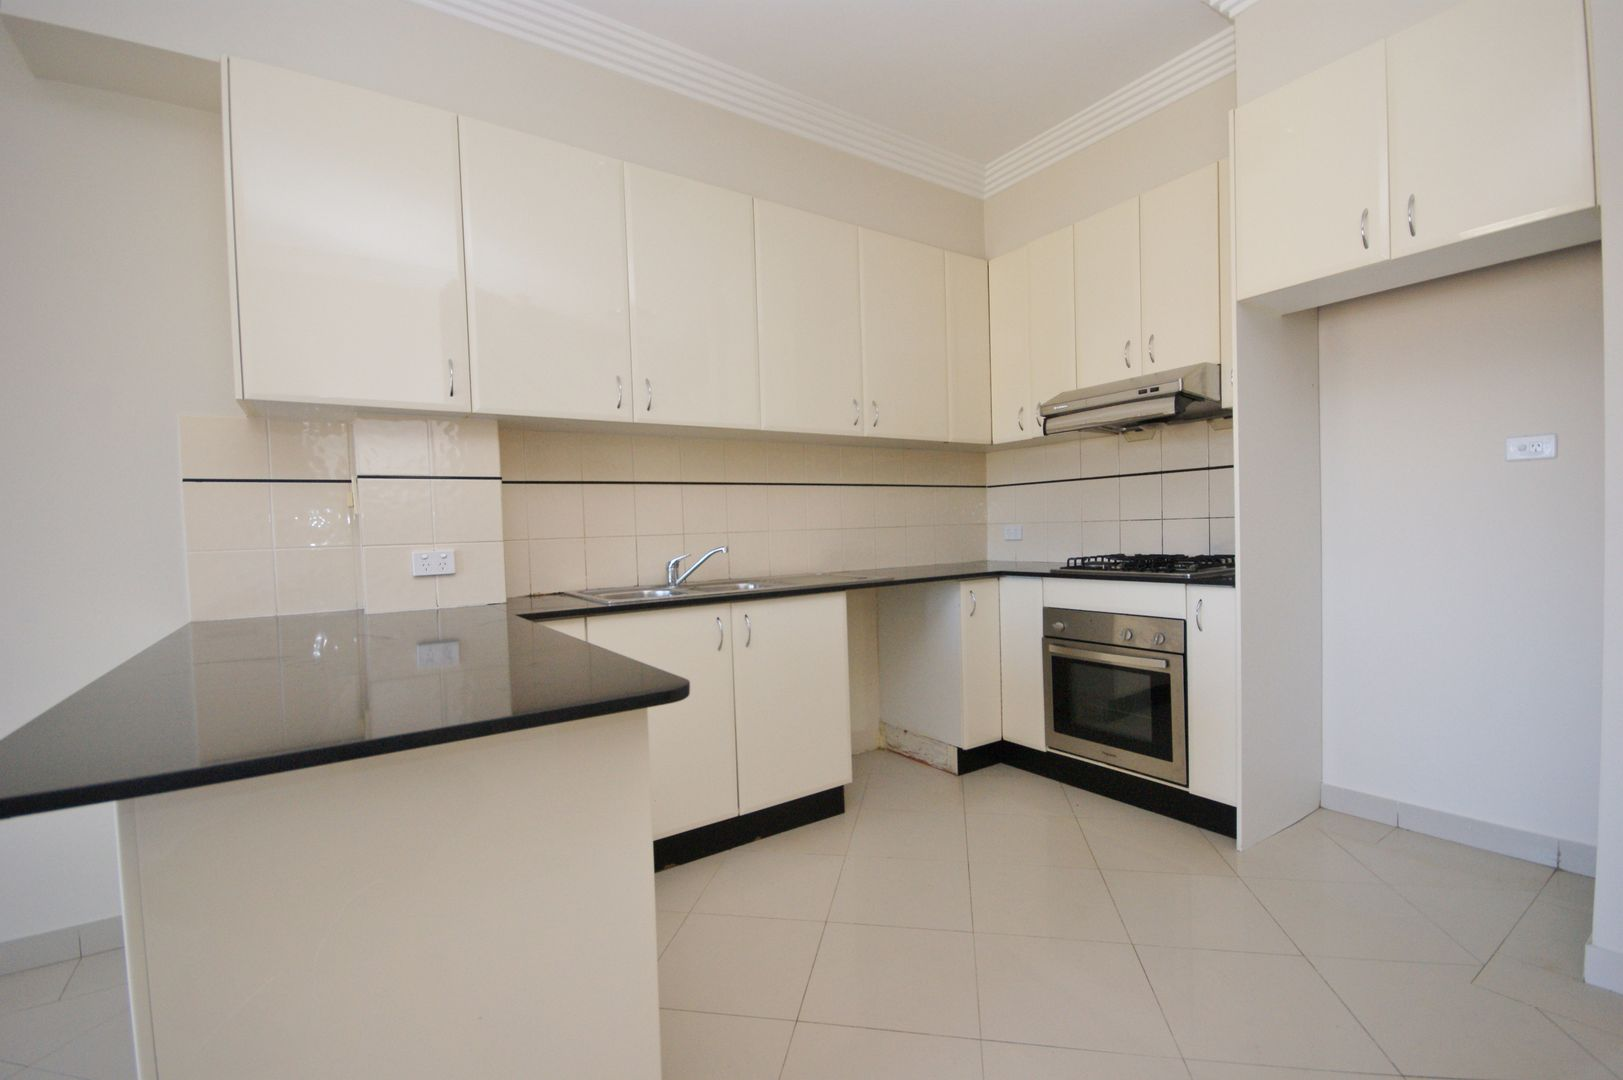 7/335-339 Blaxcell St, Granville NSW 2142, Image 2